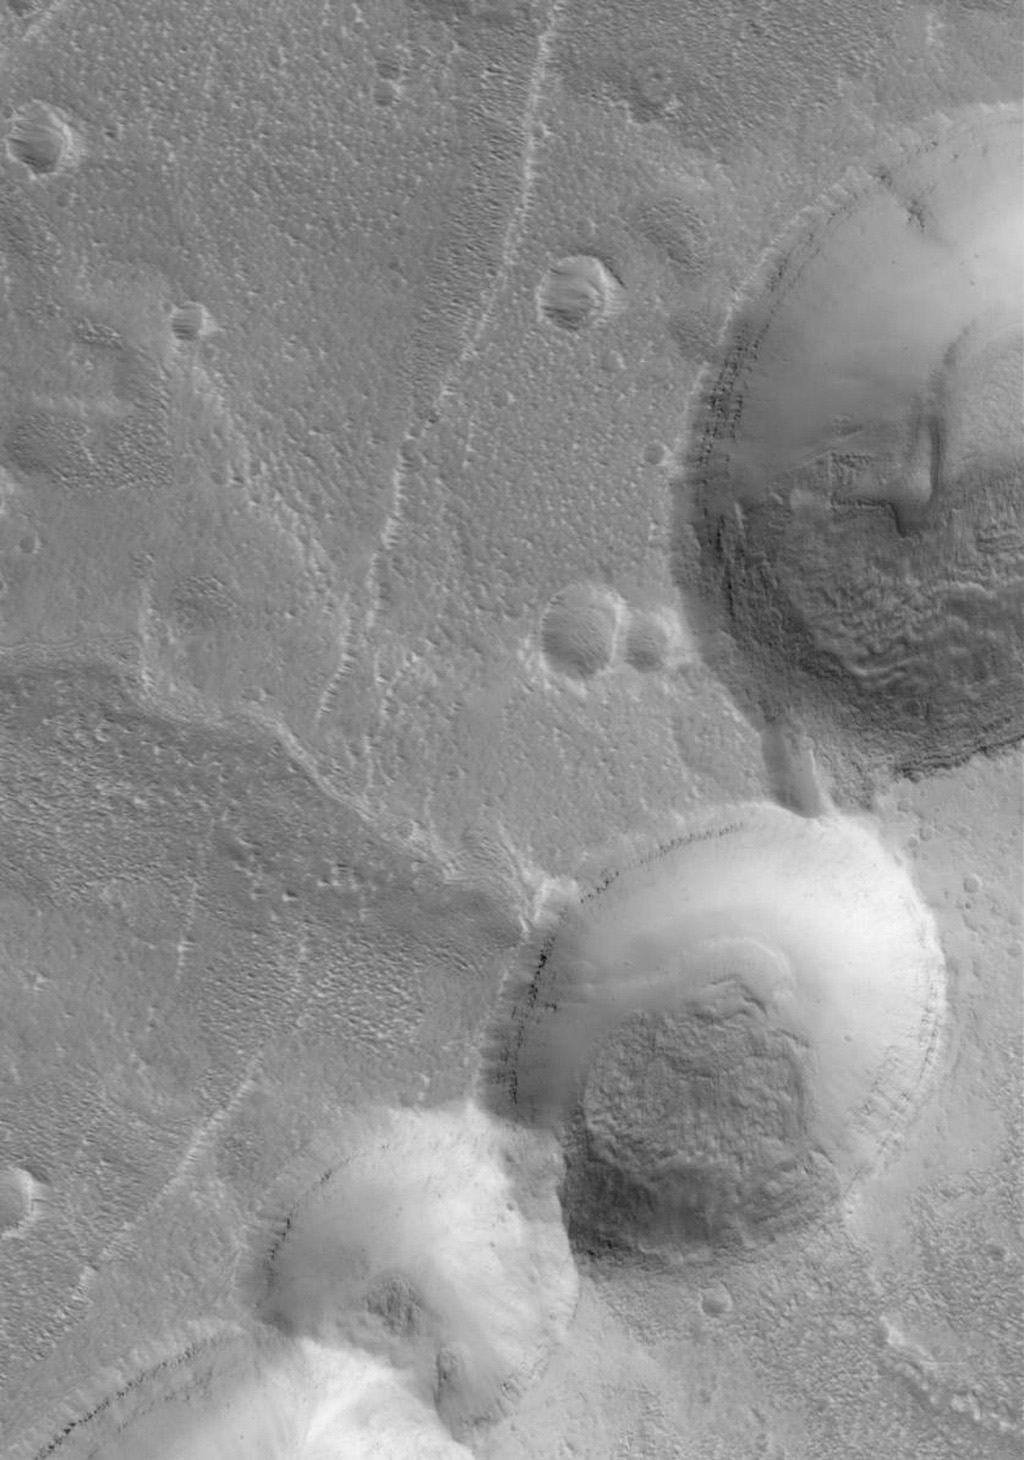 This NASA Mars Global Surveyor image shows partially-filled collapse pits on the eastern flank of Alba Patera, a large volcano in northern Tharsis.